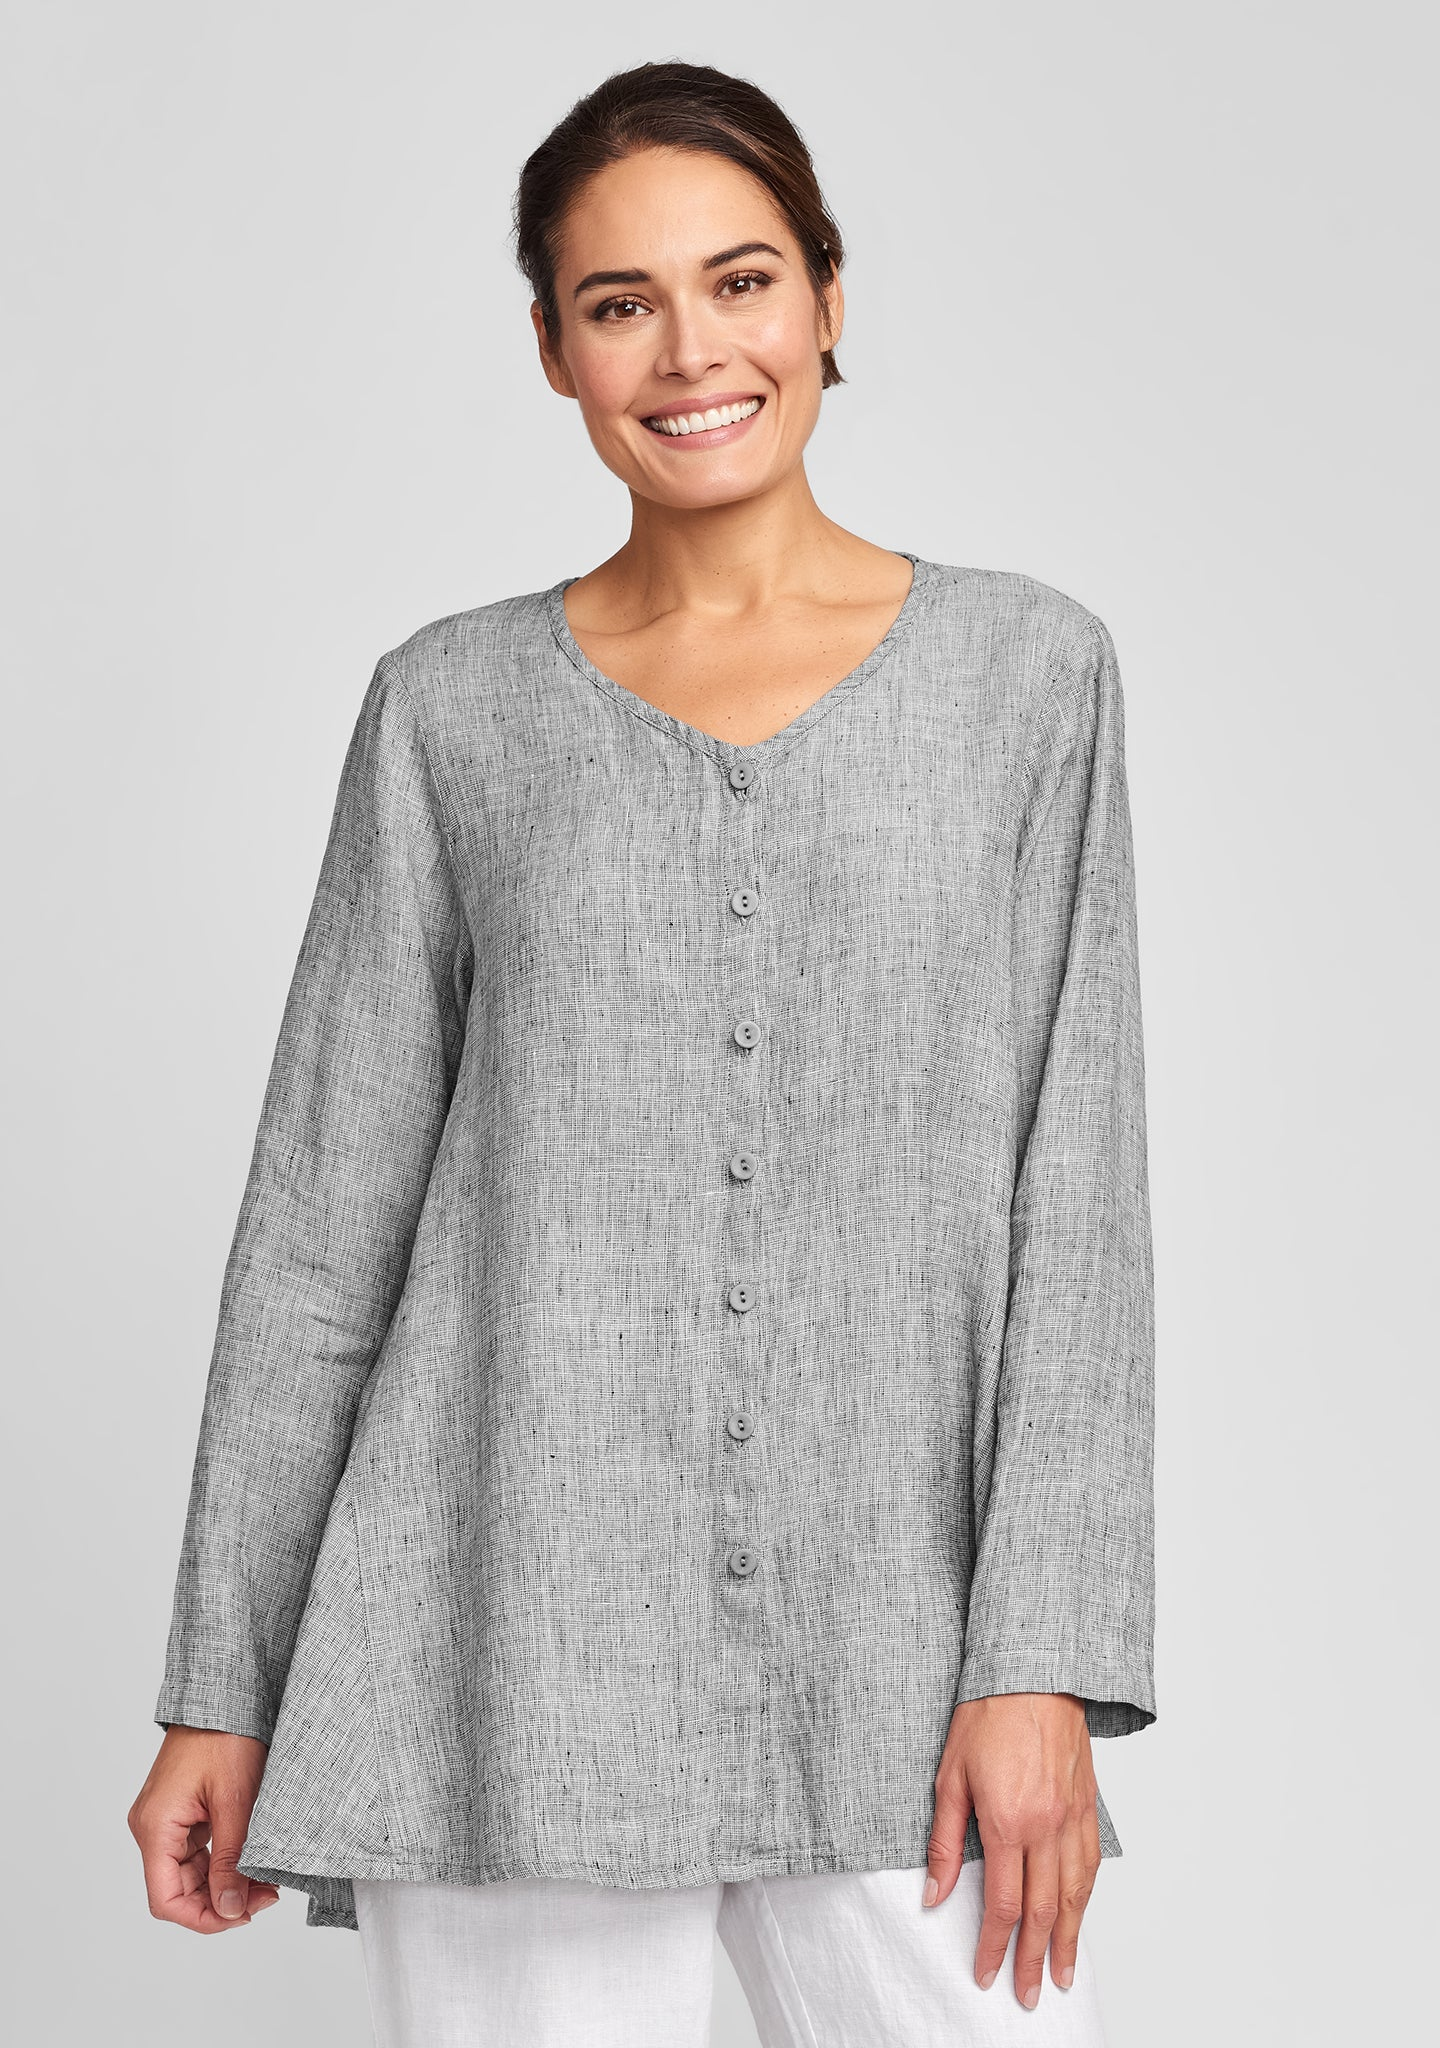 flourish cardi linen cardigan grey